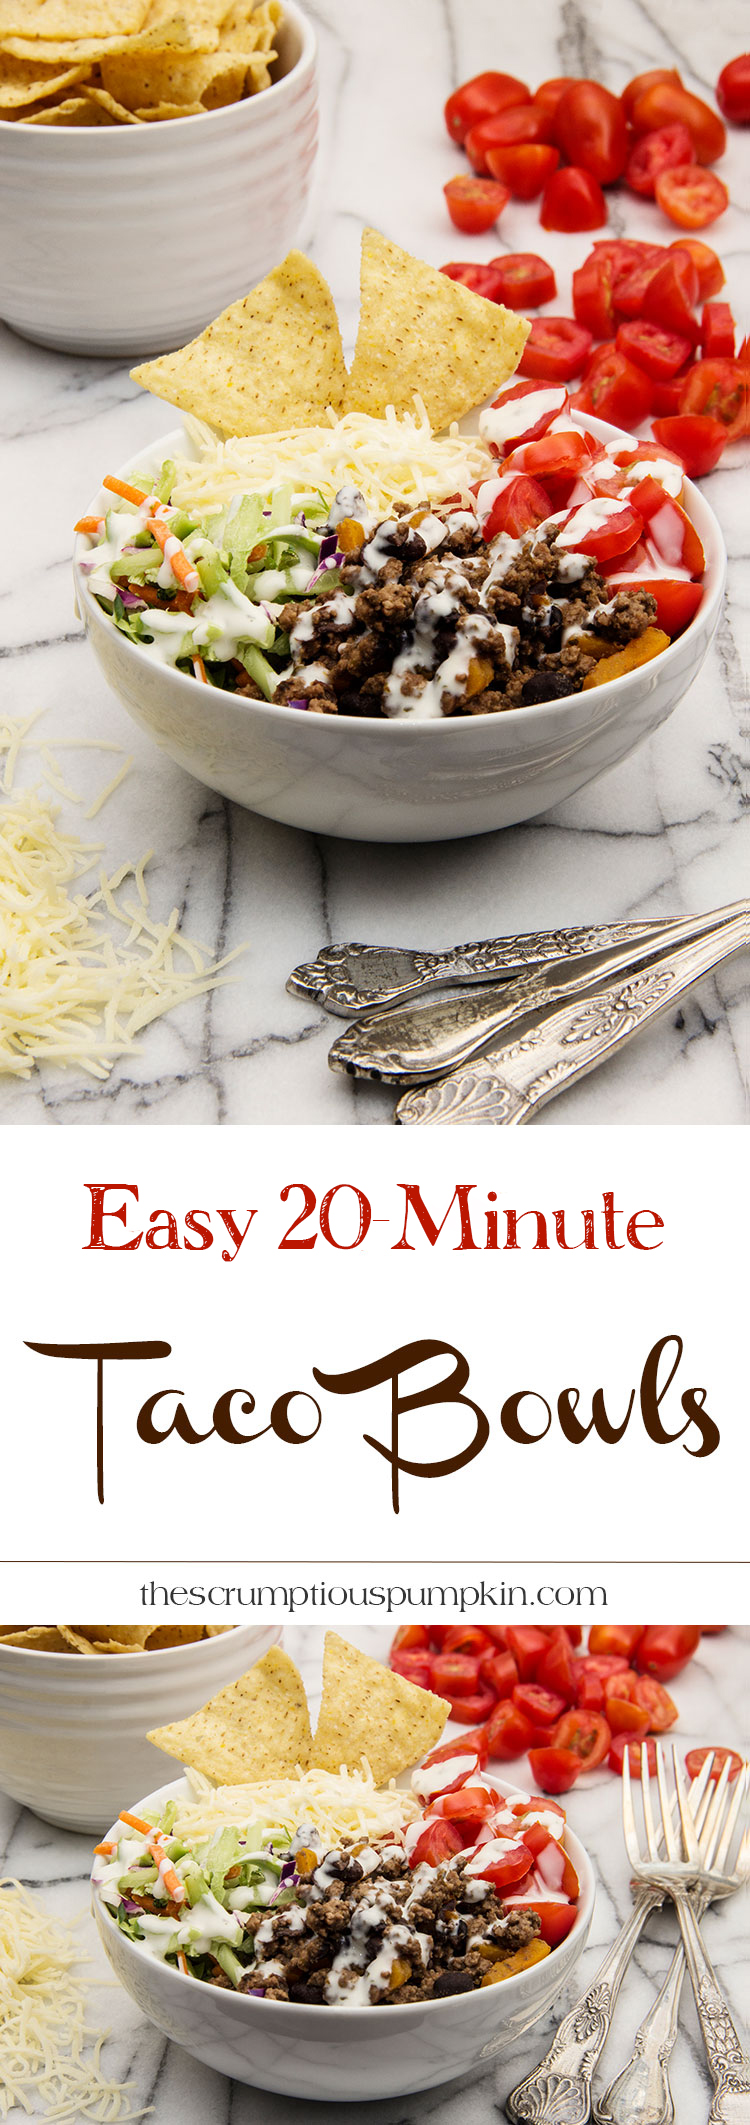 Healthy-Easy-20-Minute-Taco-Bowls